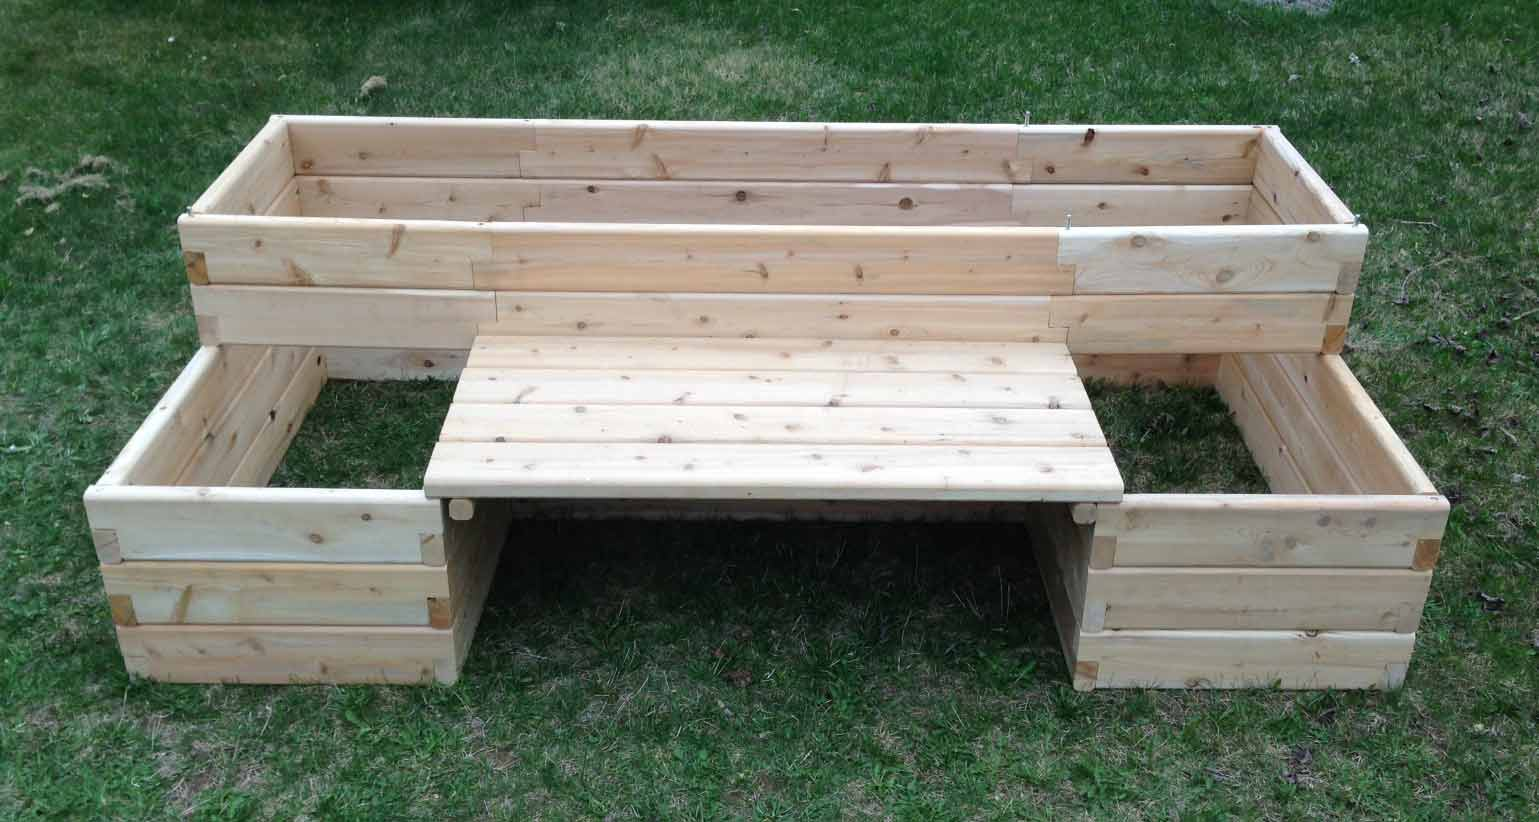 4 X 8 Raised Garden Bed With Bench ...